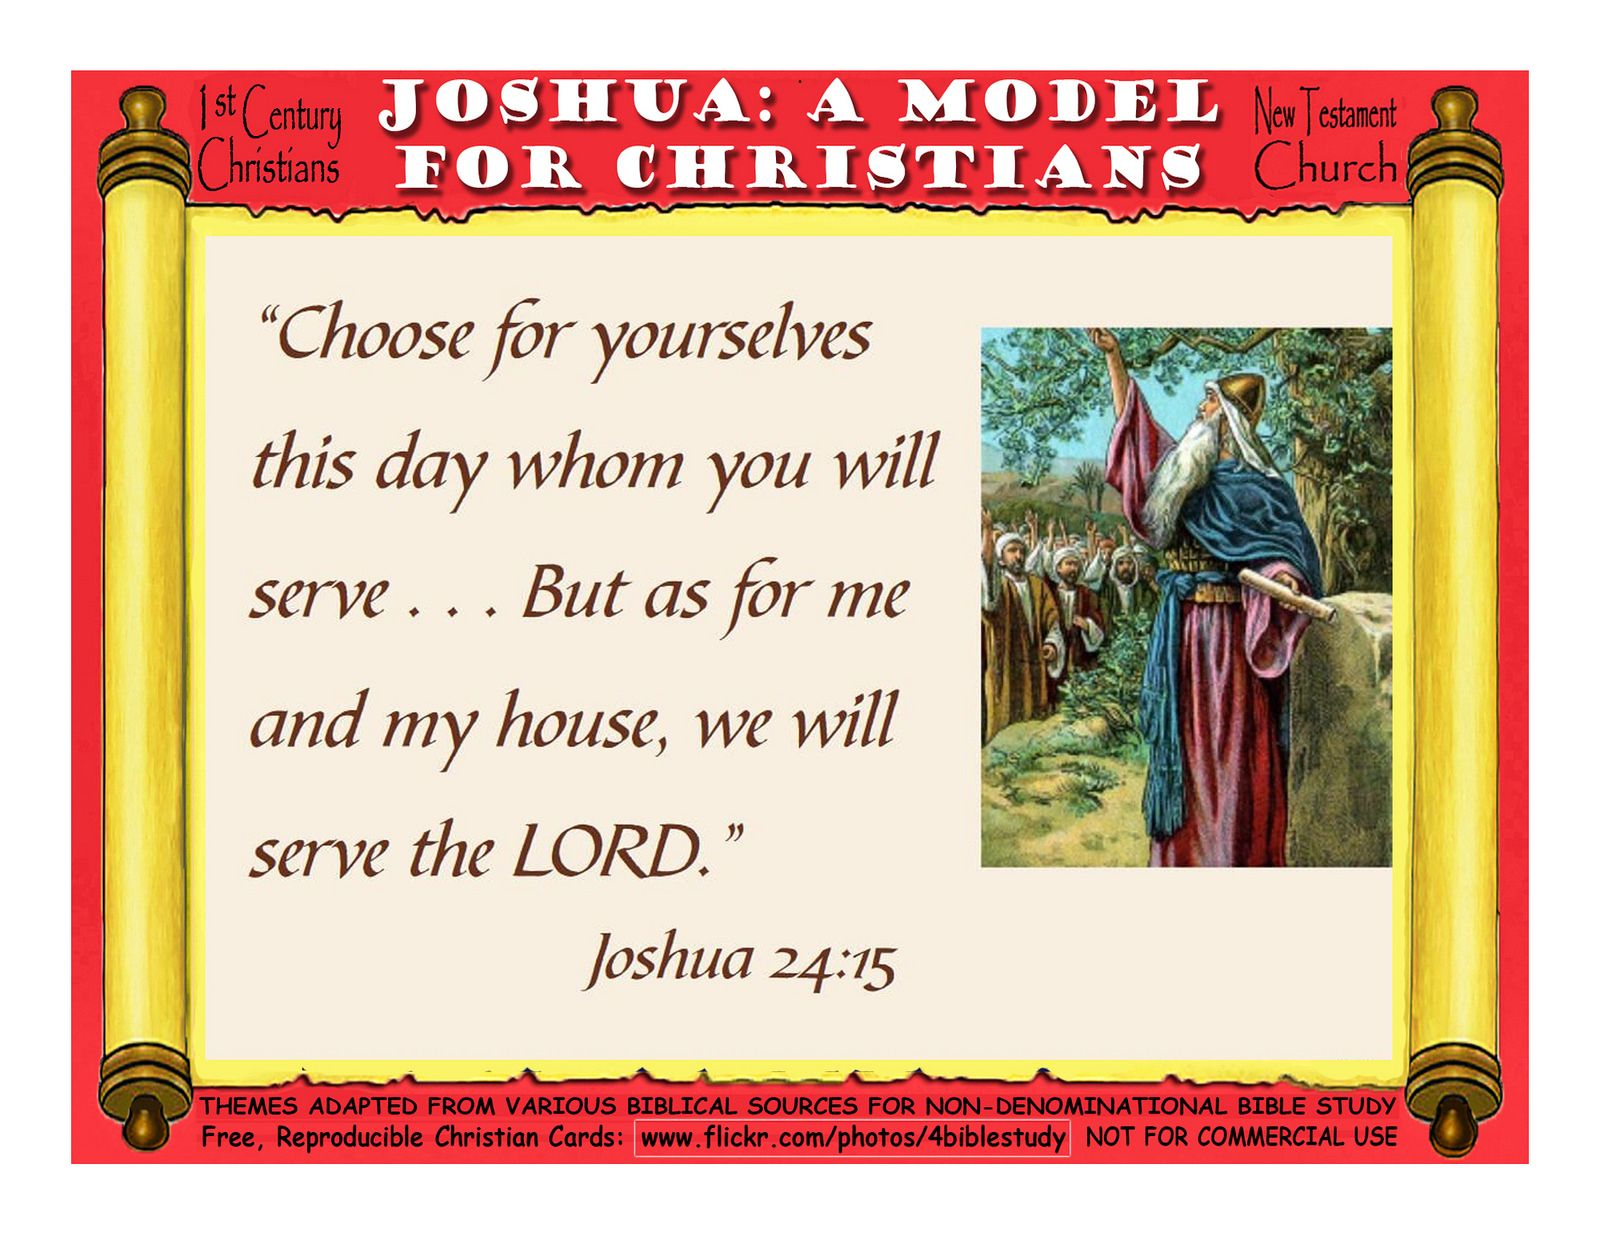 Joshua, A Model for Christians - First Century Christians - New